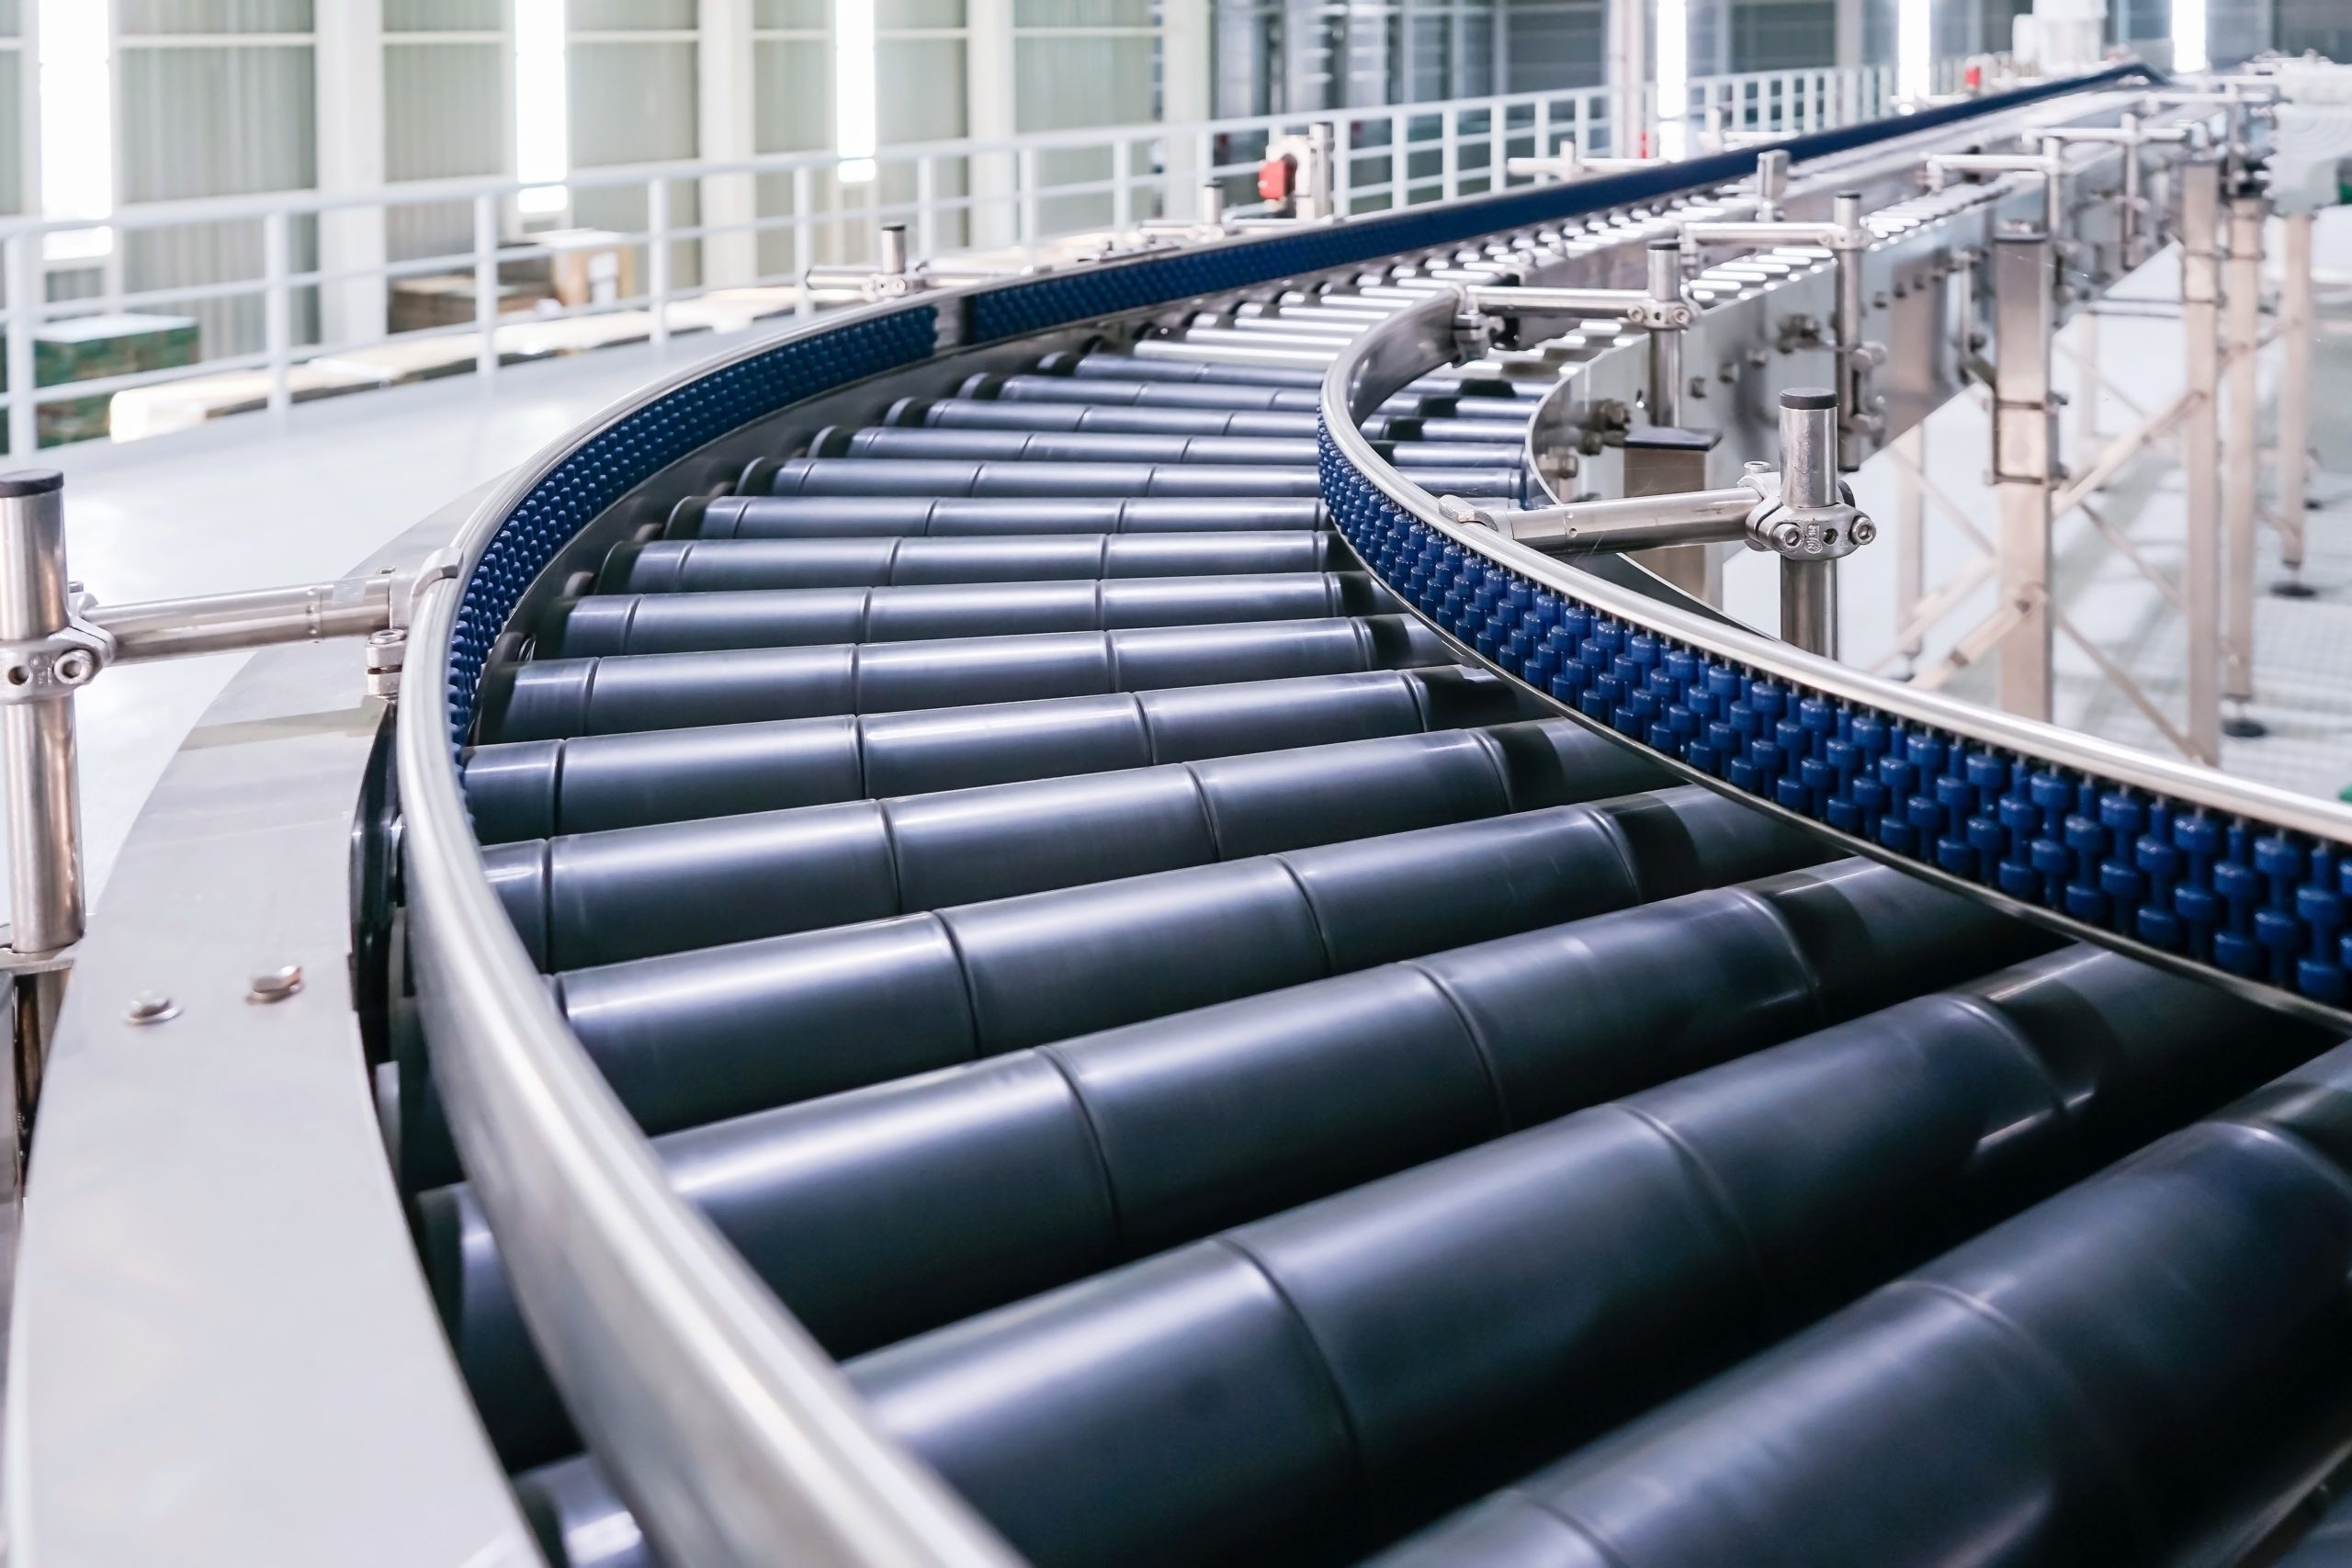 Trends in Conveyor Systems and Technology - NAI Group